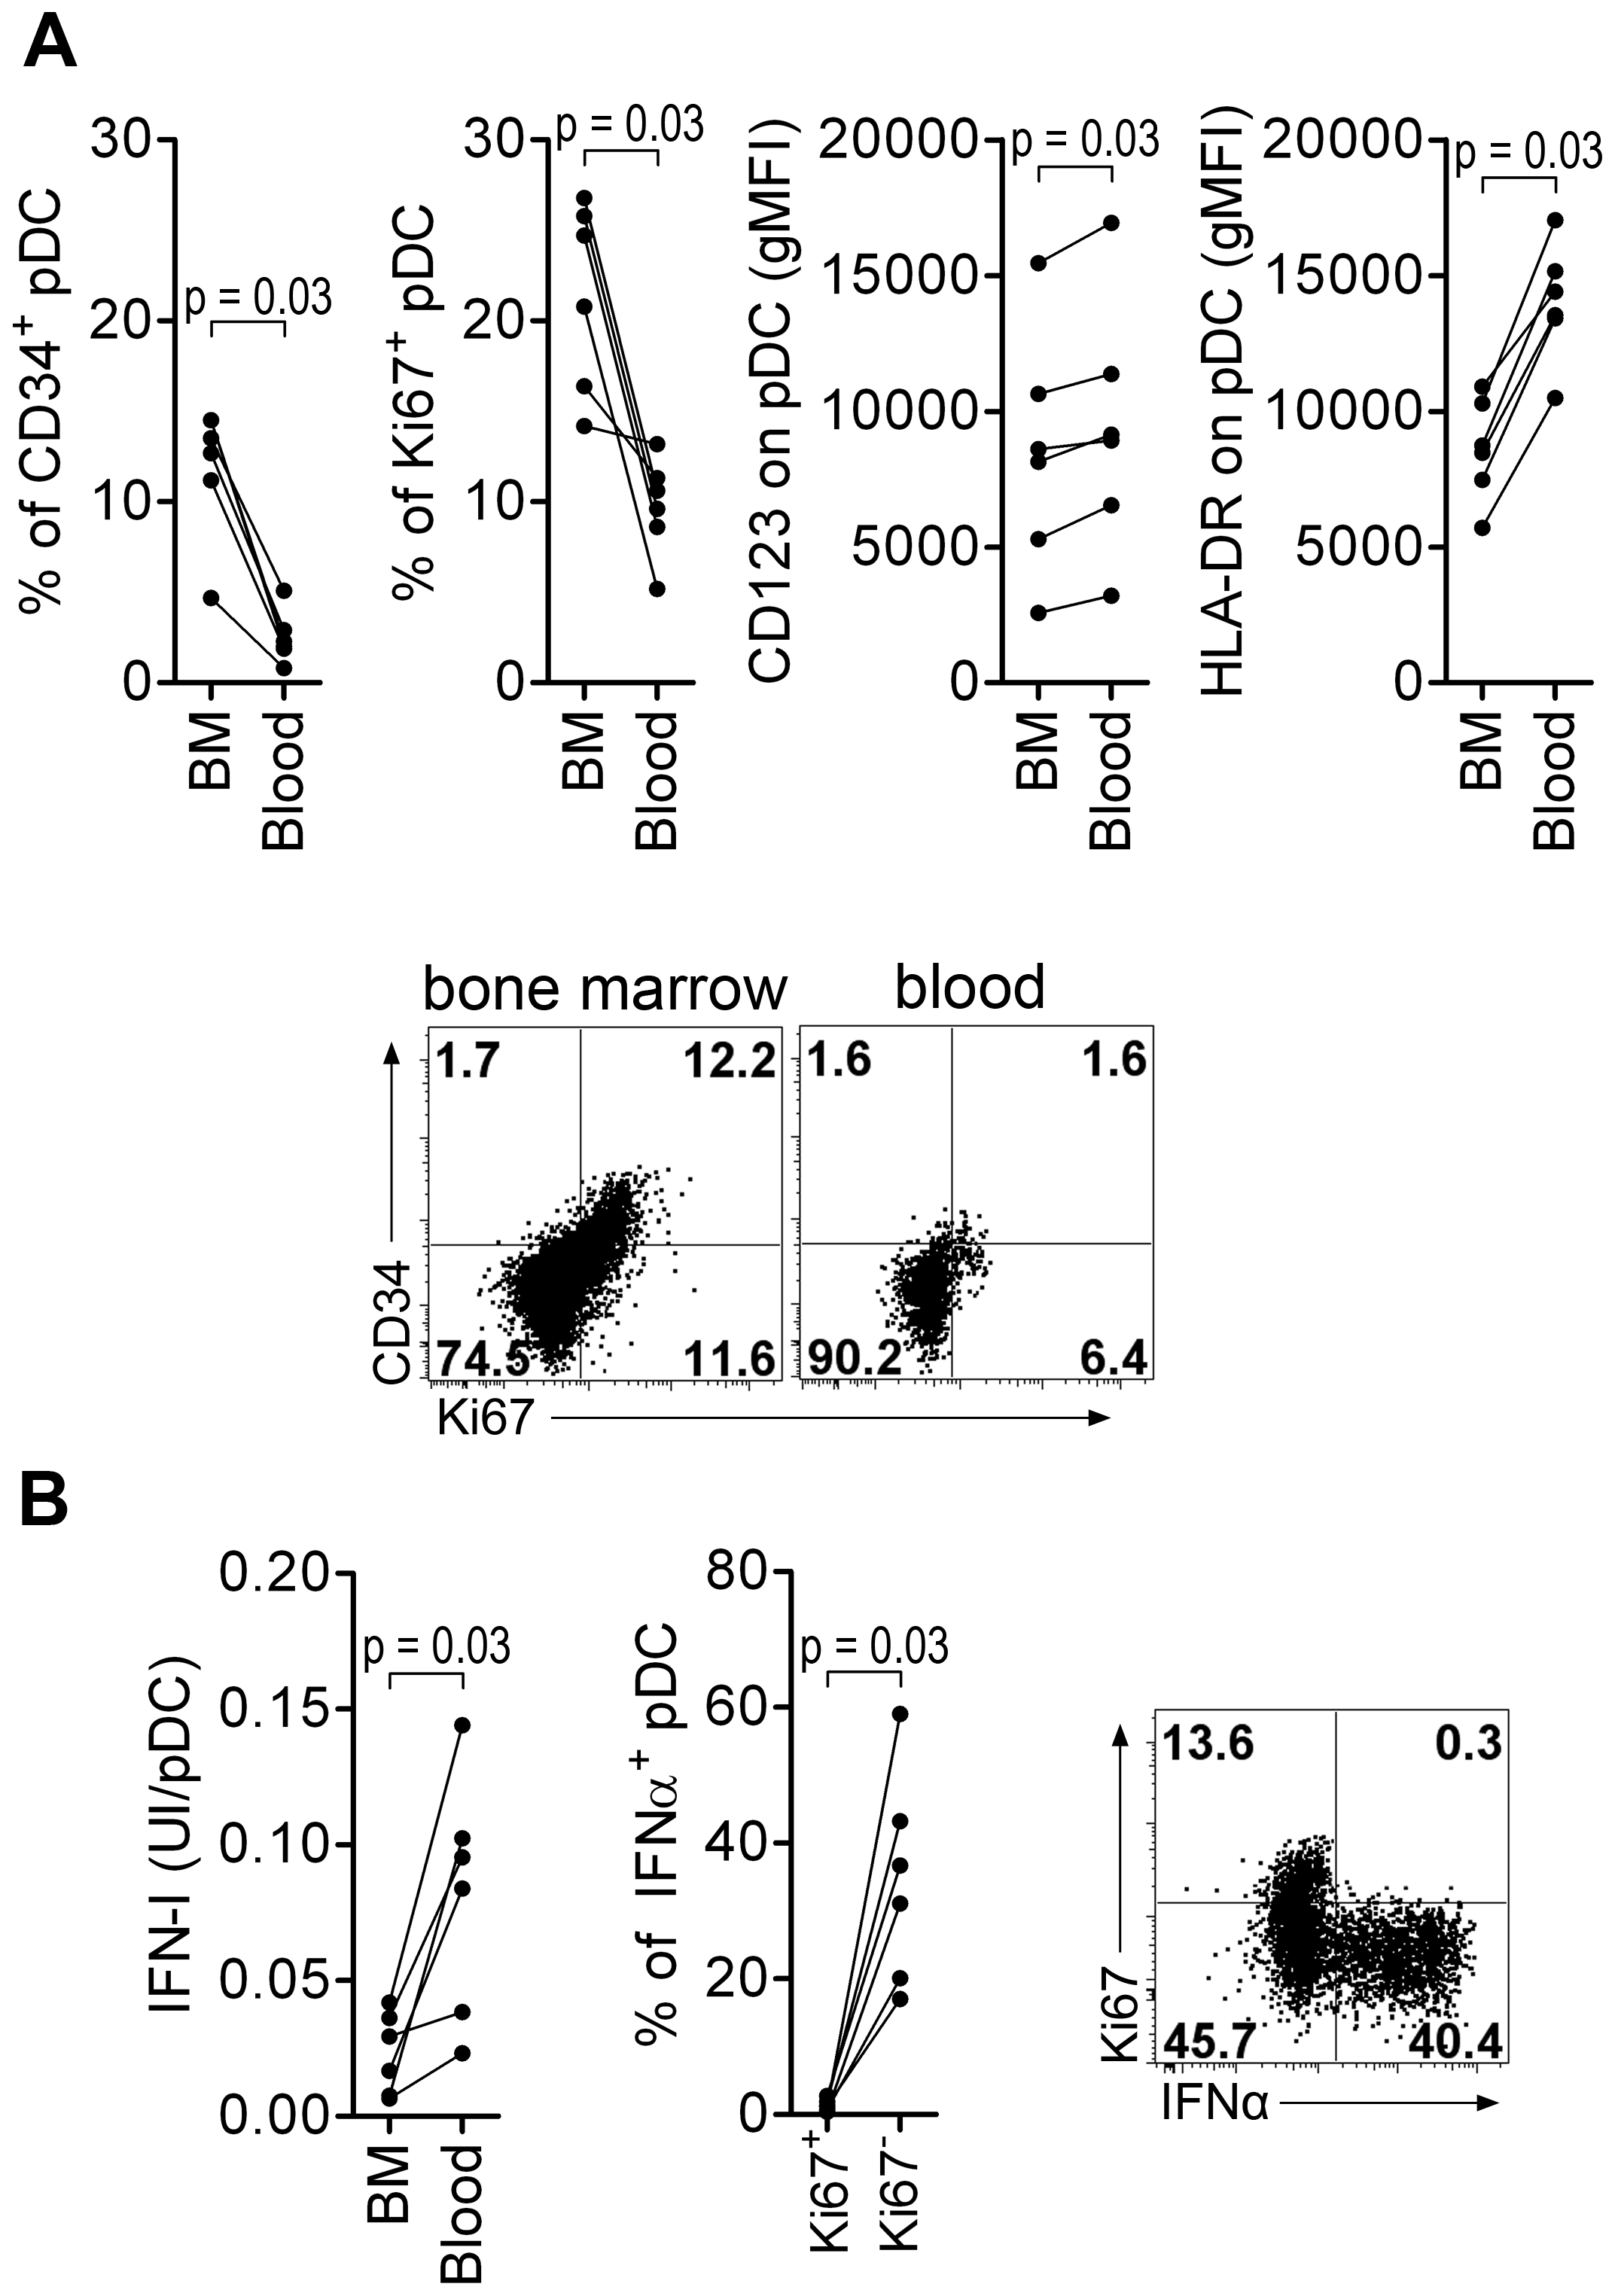 Macaque bone marrow pDC express lower CD123 and HLA-DR, display higher percentages of CD34+ and Ki67+ precursors than blood pDC, and are poor IFN-I producers.